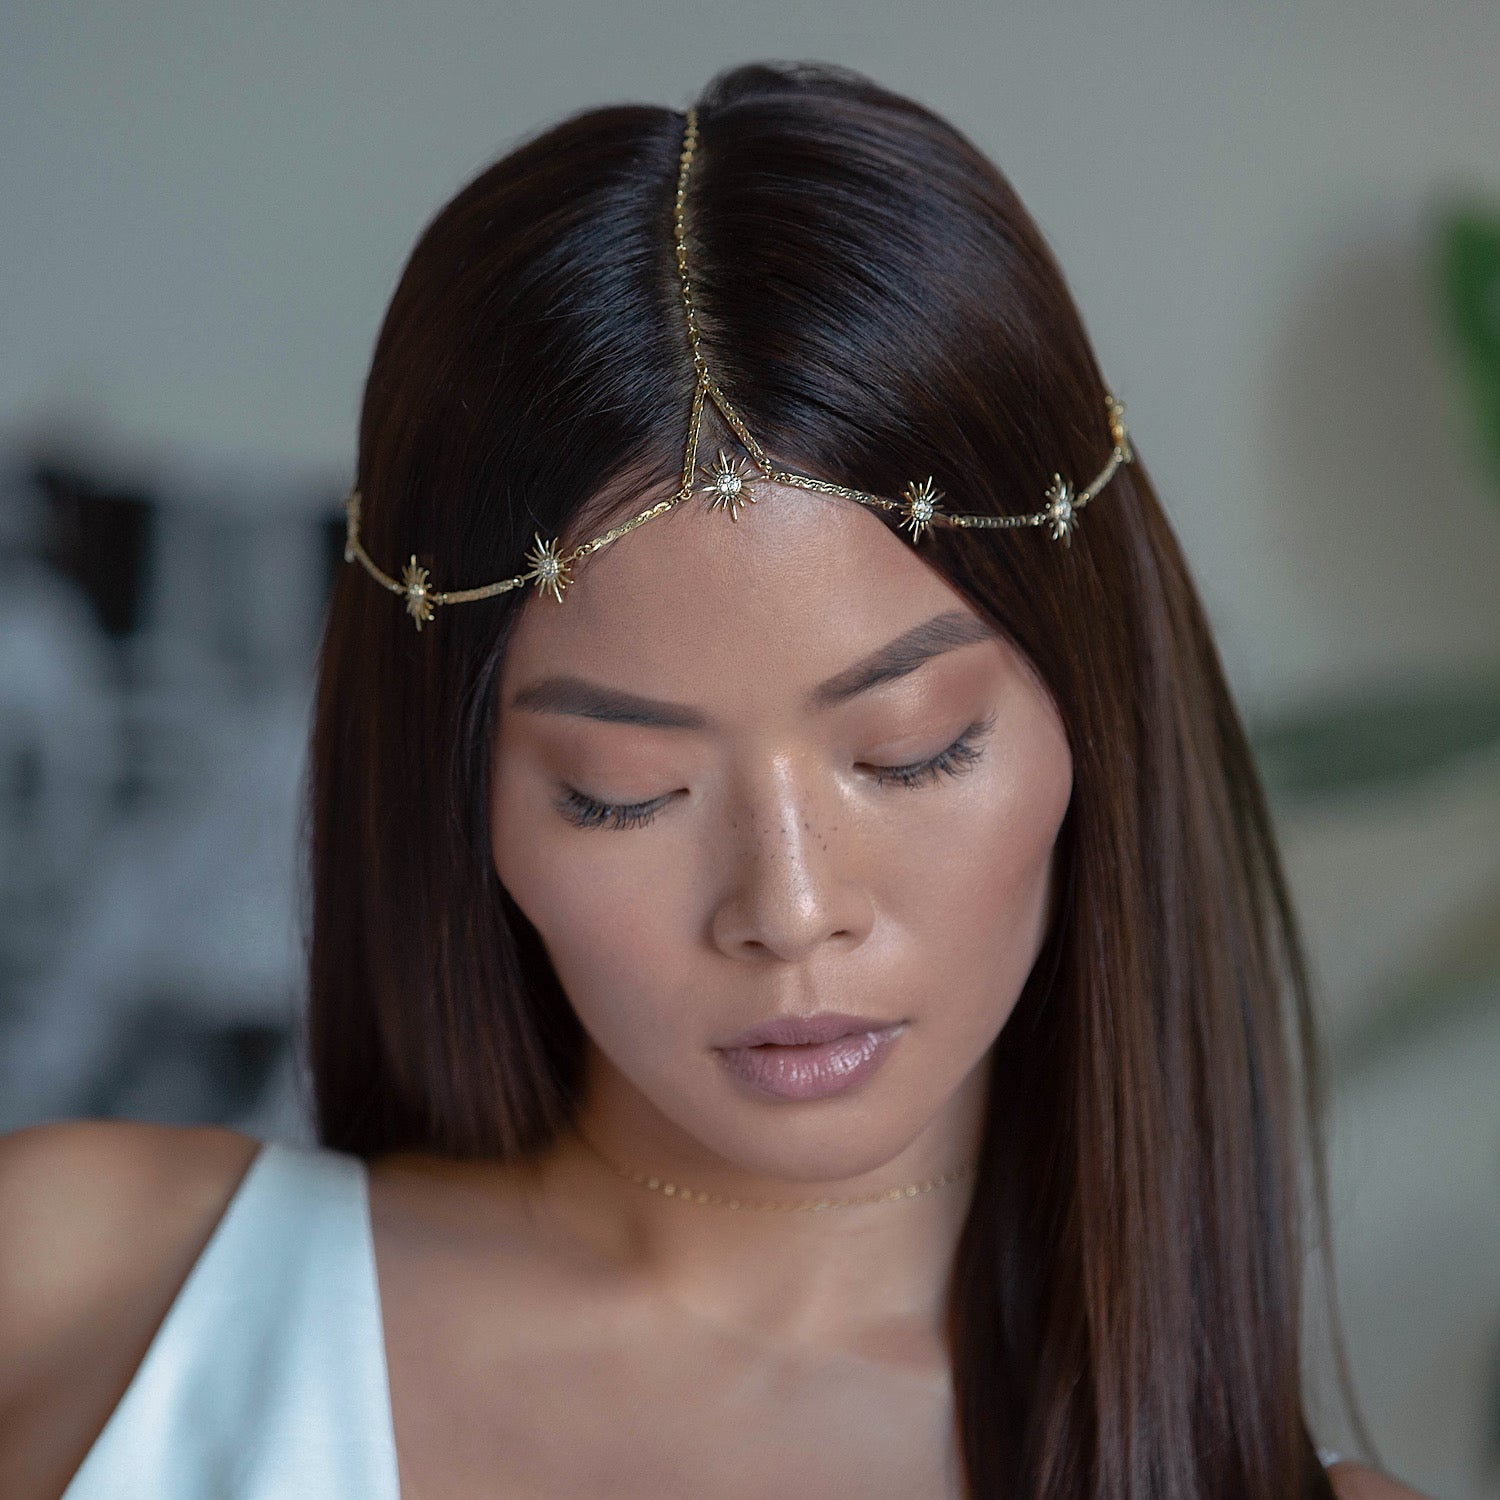 Star Halo Crown Headpiece